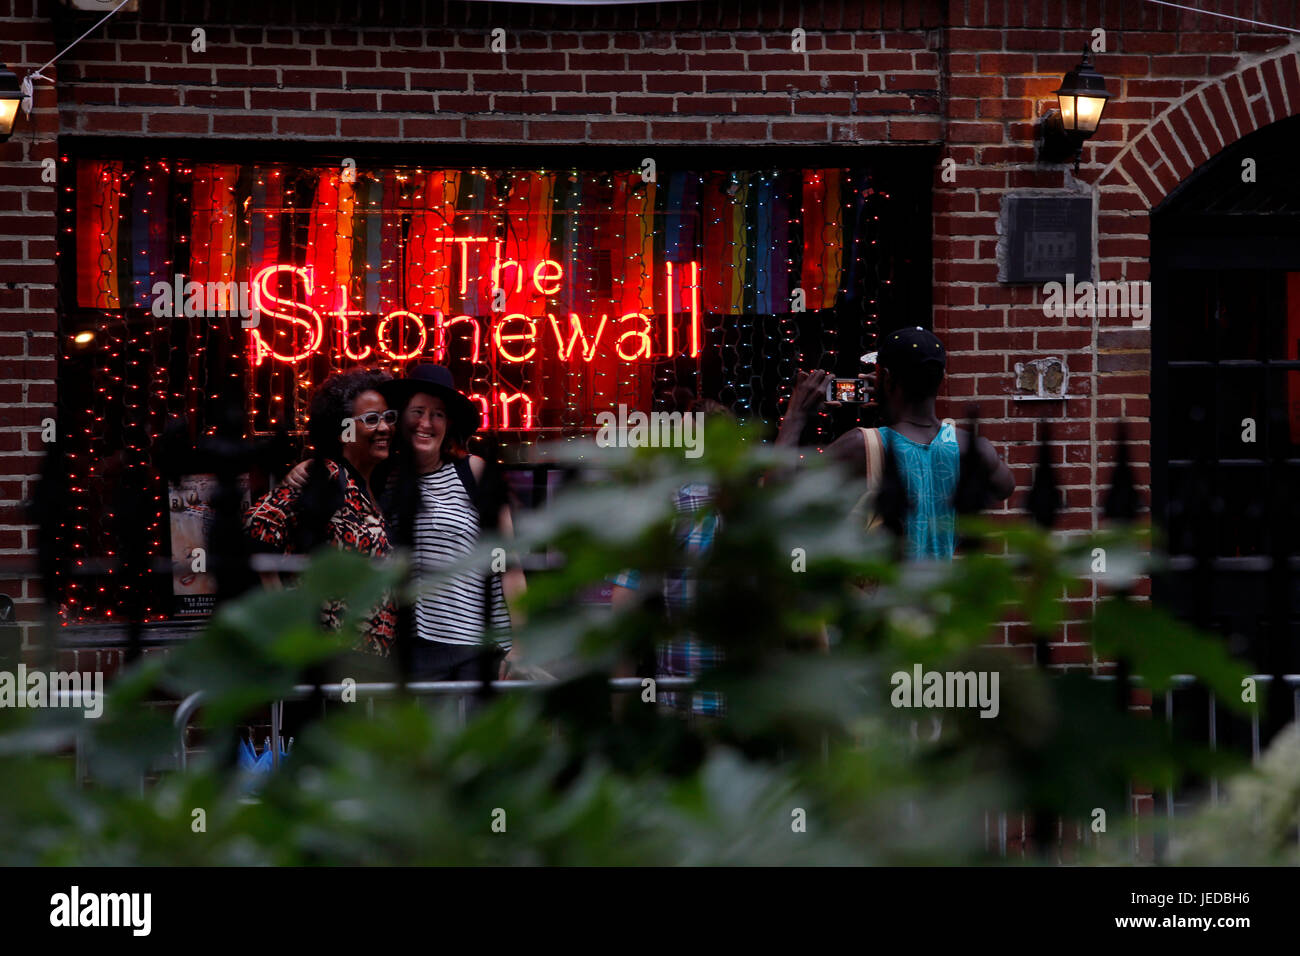 New York, USA. 23rd June, 2017. The Stonewall Inn in New York City's Greenwich Village where the Gay Pride movement - Stock Image